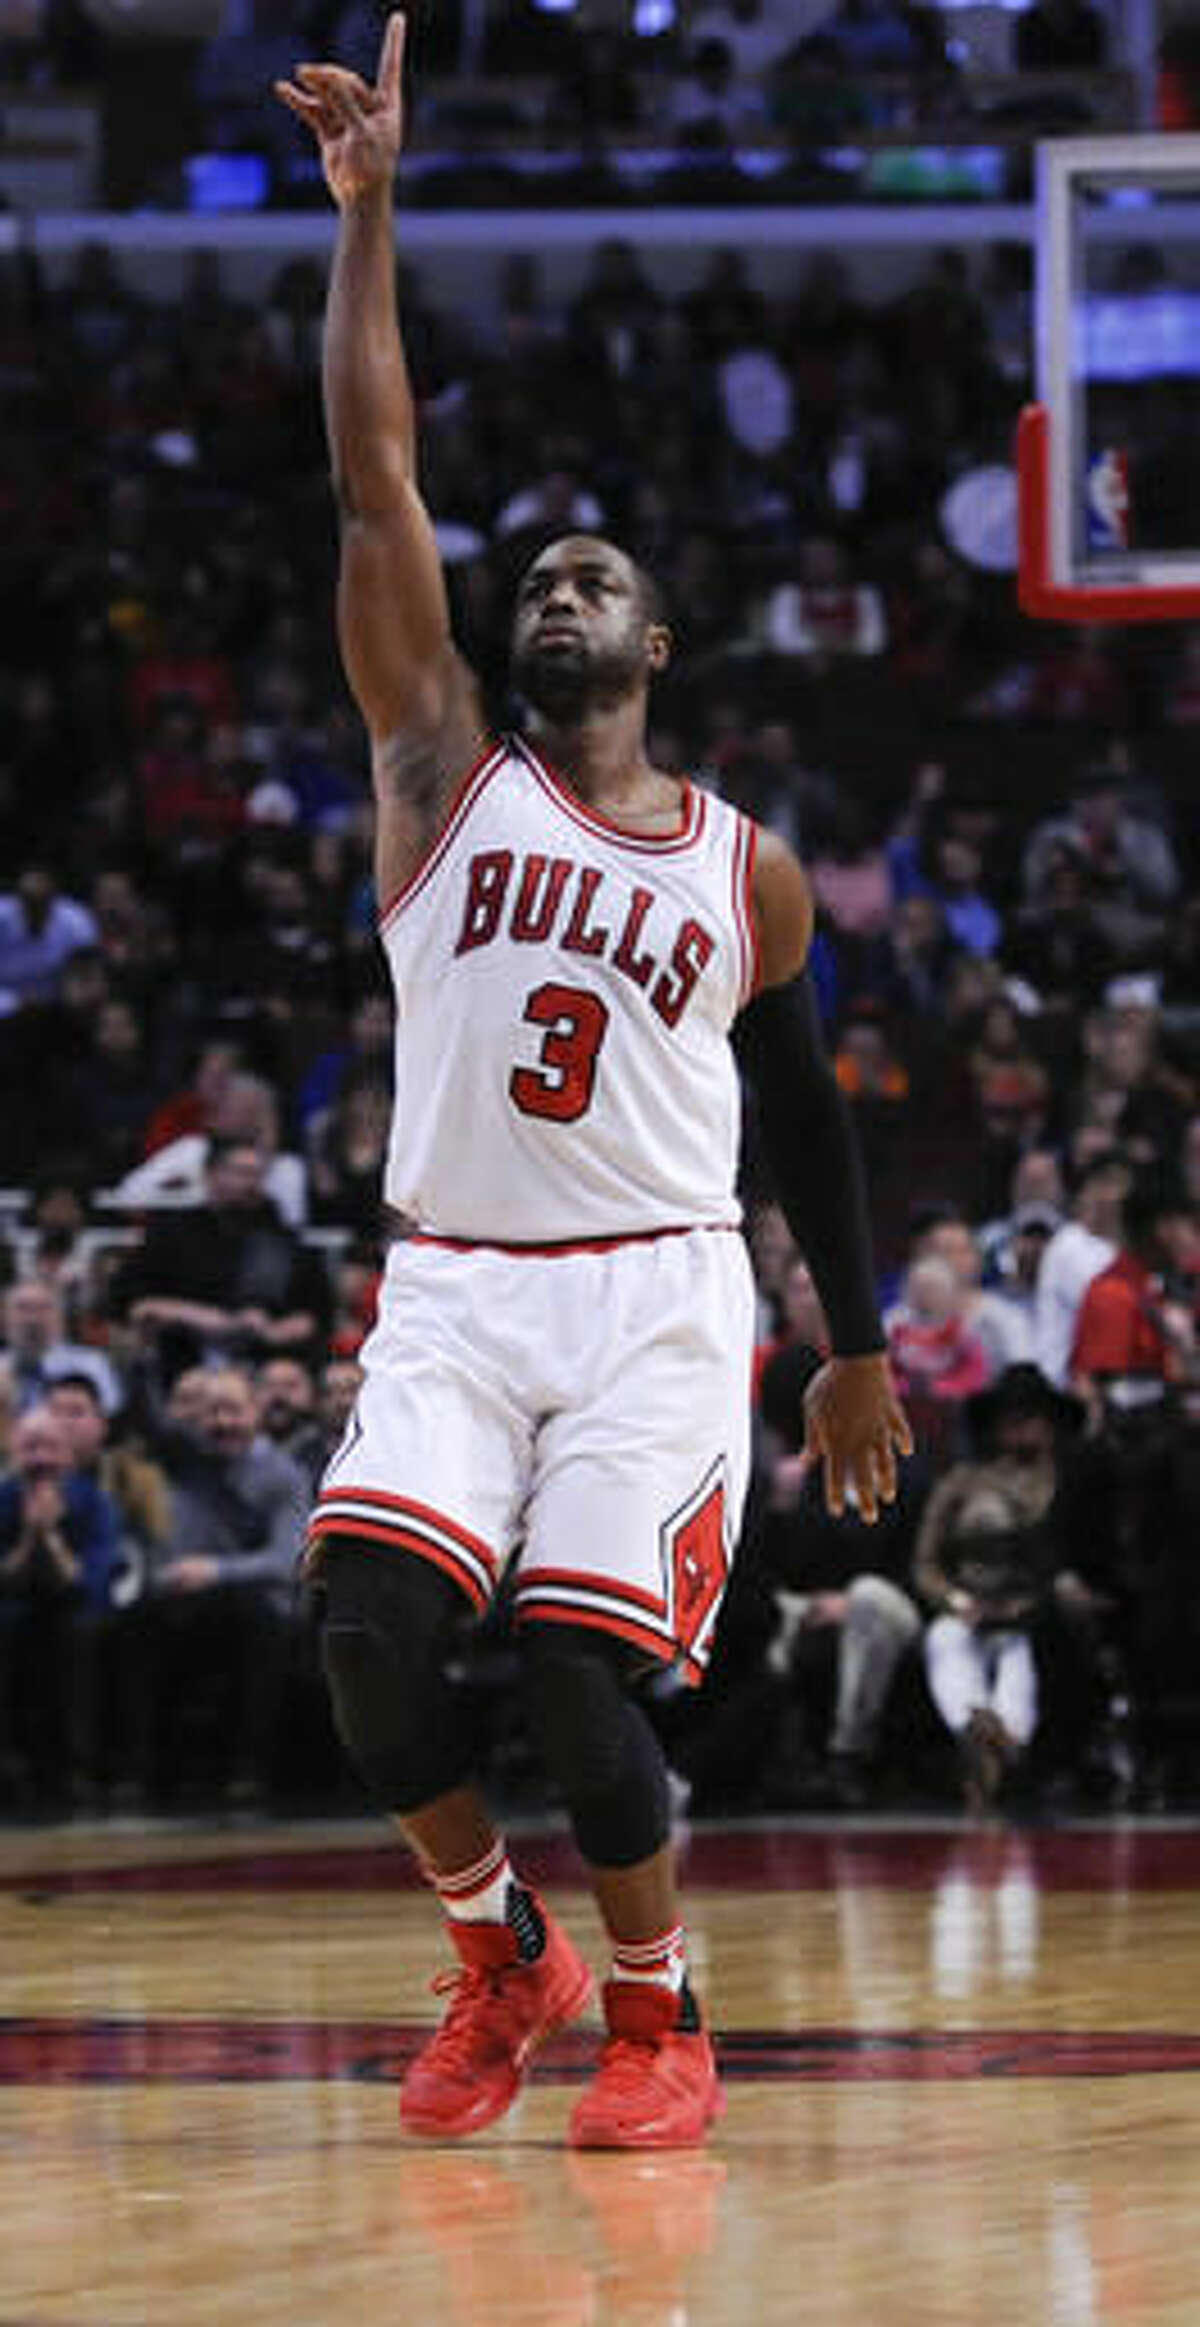 Chicago Bulls guard Dwyane Wade gestures after scoring his first basket during the first quarter of an NBA basketball game against the Boston Celtics, Thursday, Oct. 27, 2016, in Chicago. (AP Photo/Matt Marton)